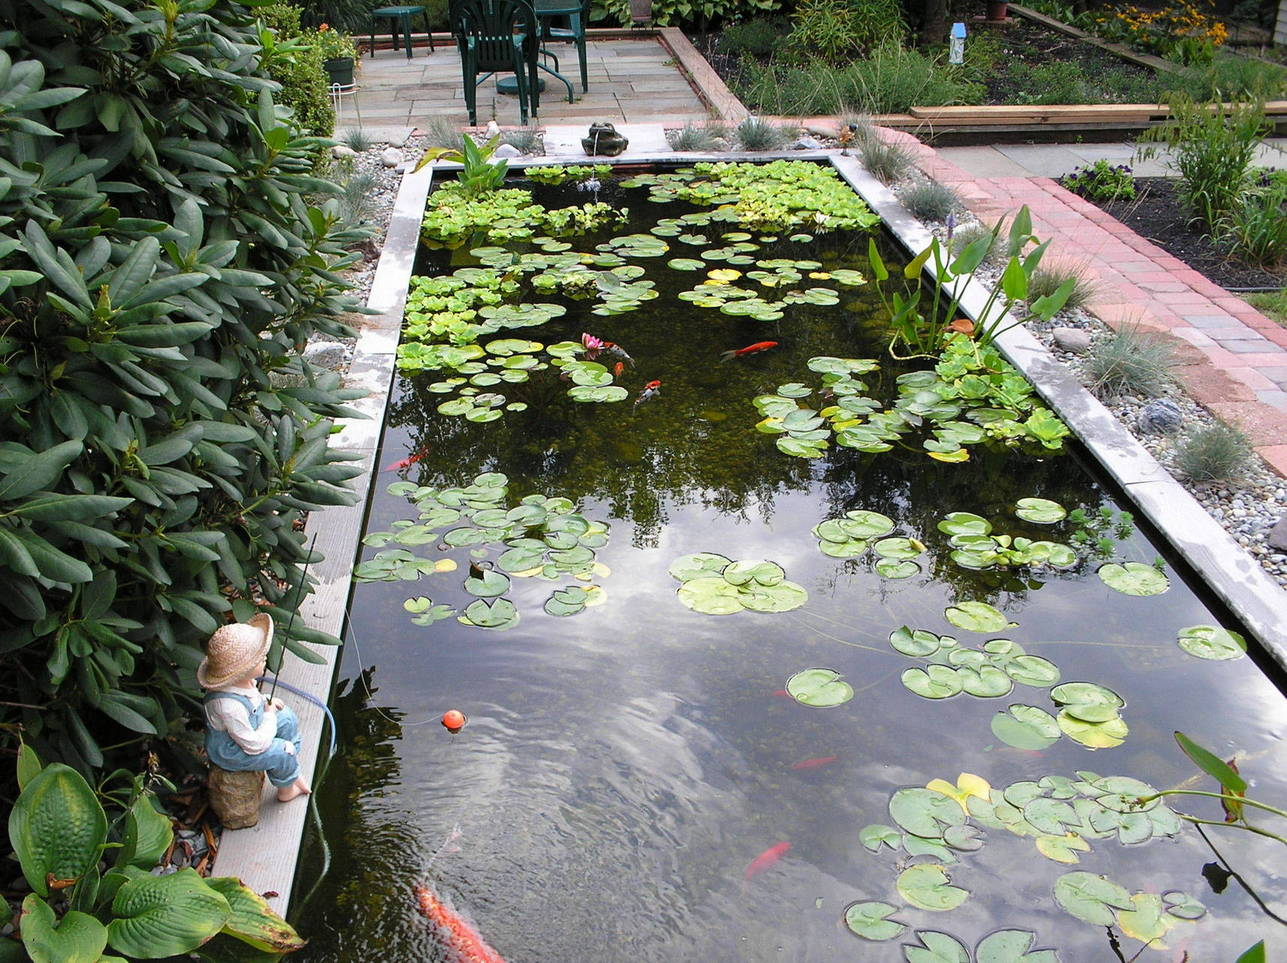 Big koi fish pond design ideas home trendy for Koi pond design ideas